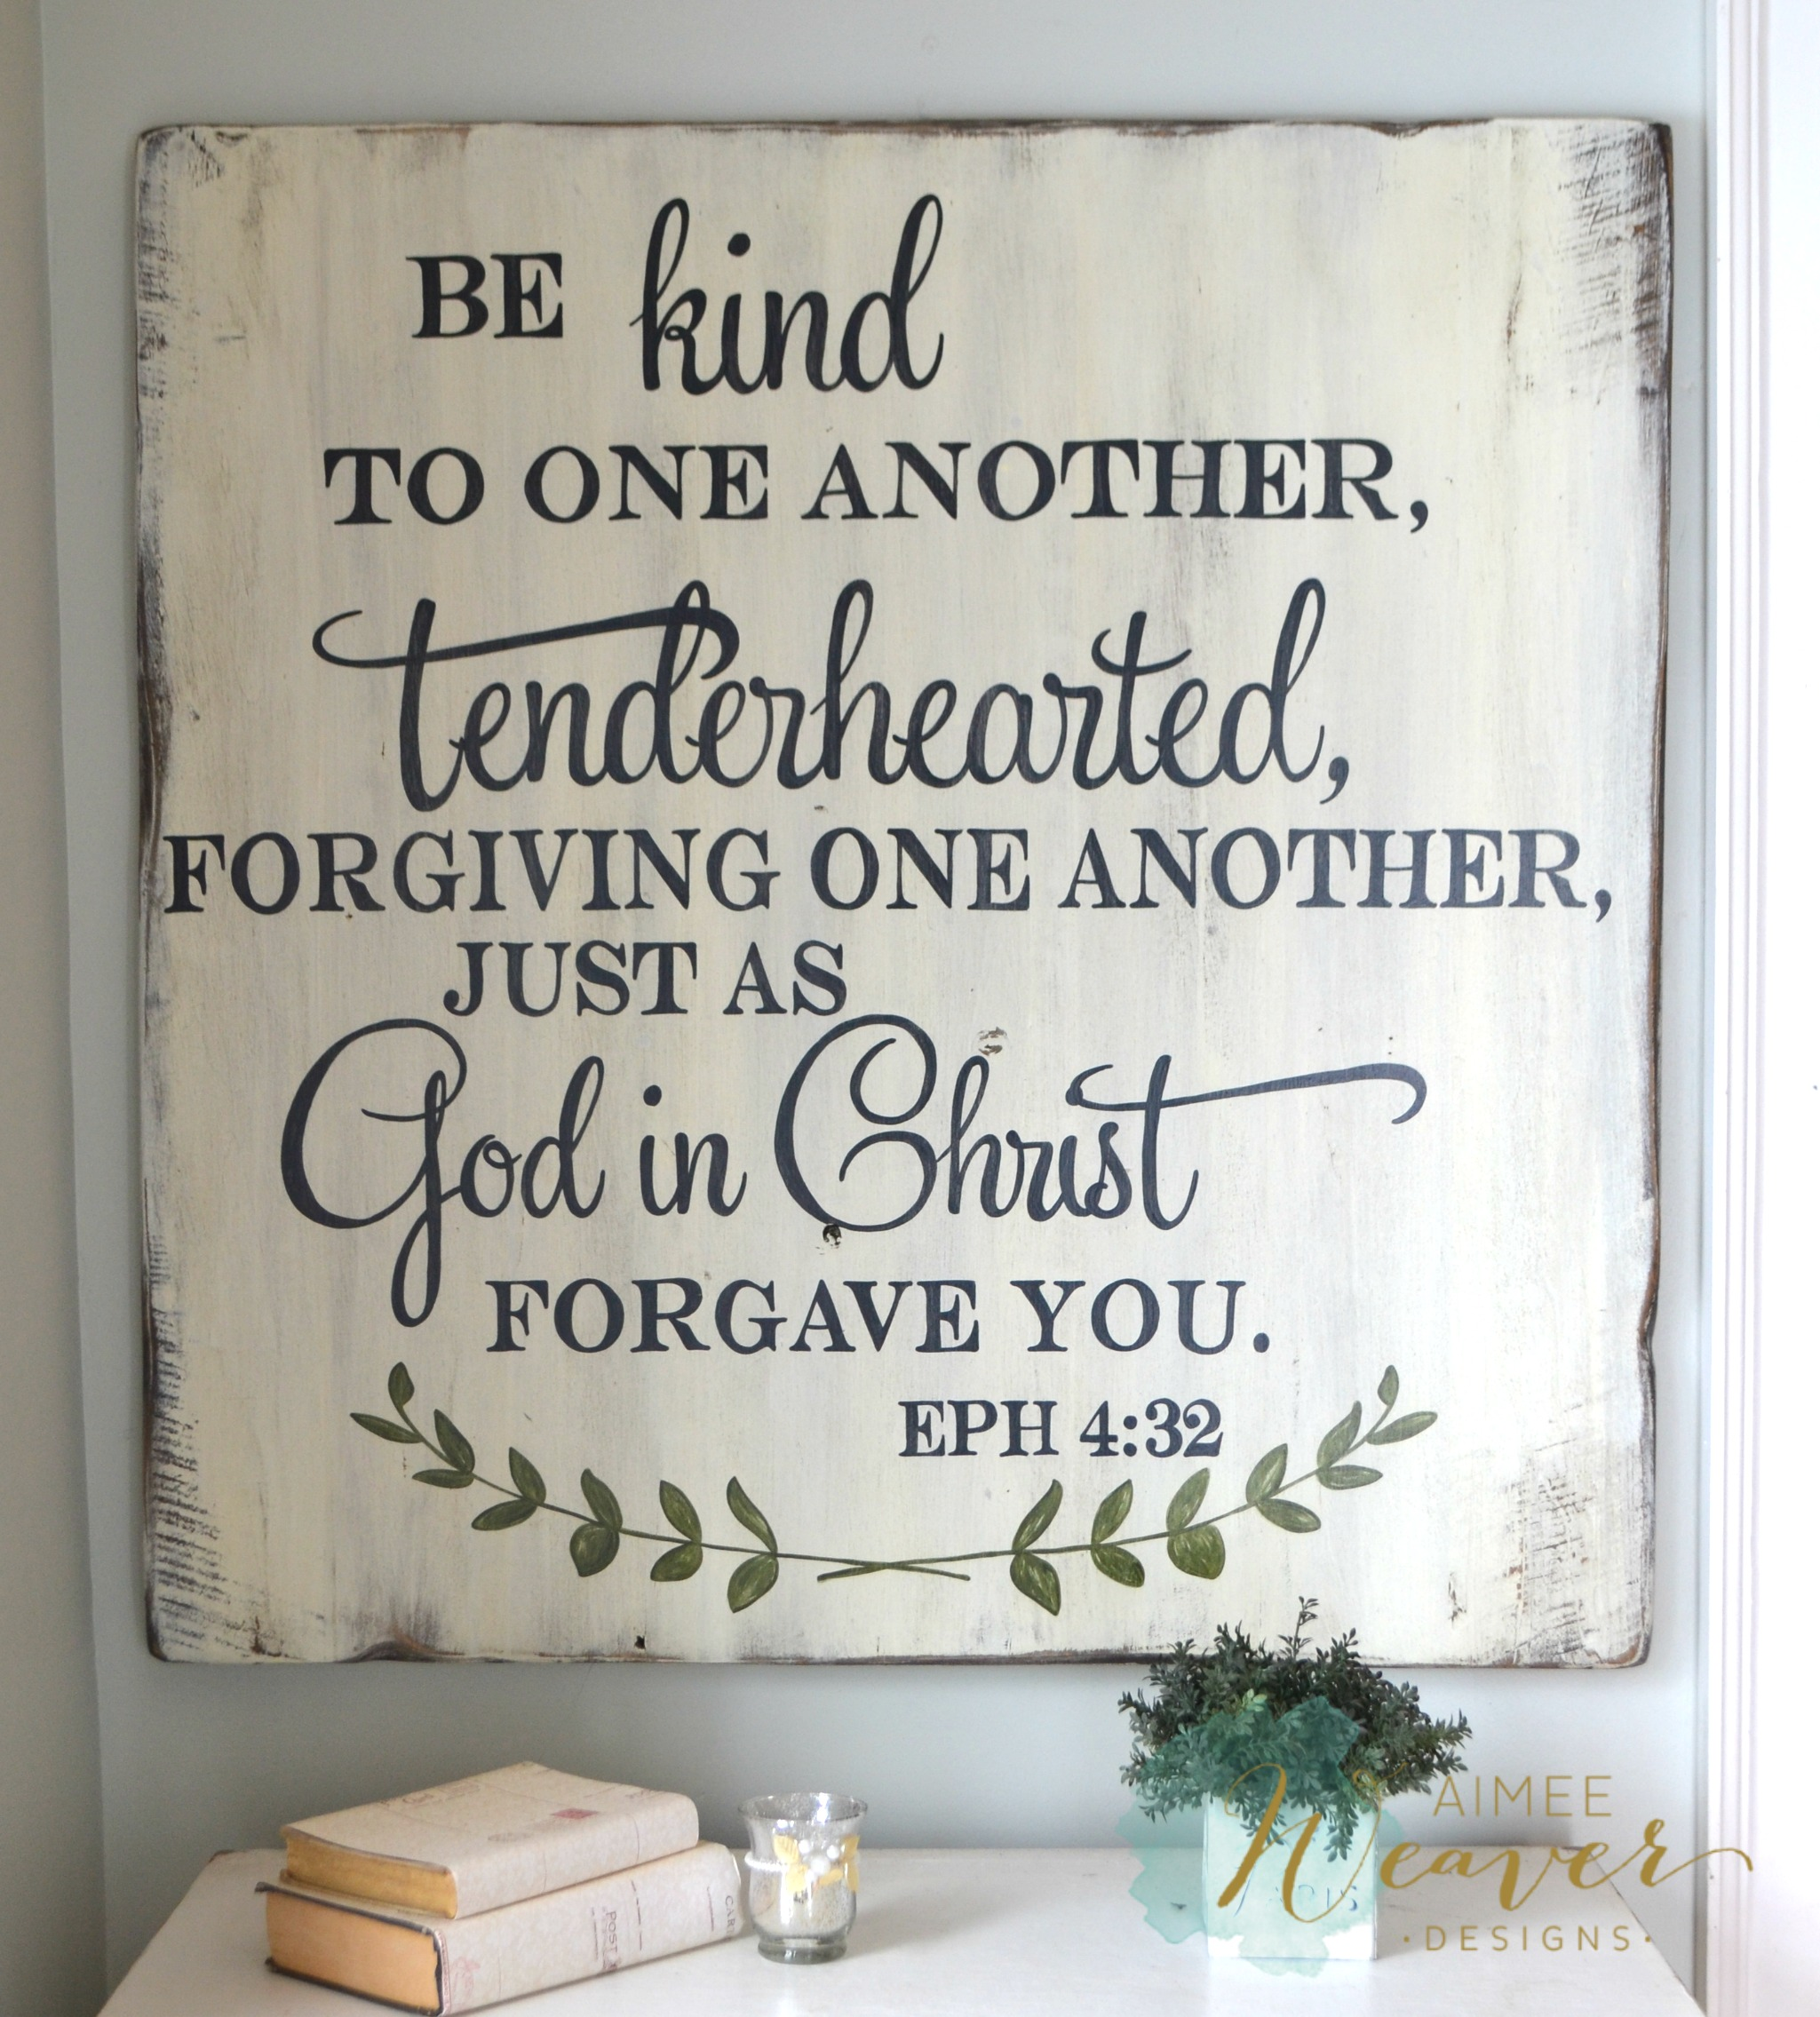 Short Marriage Quotes From The Bible: Aimee Weaver Designs, LLC